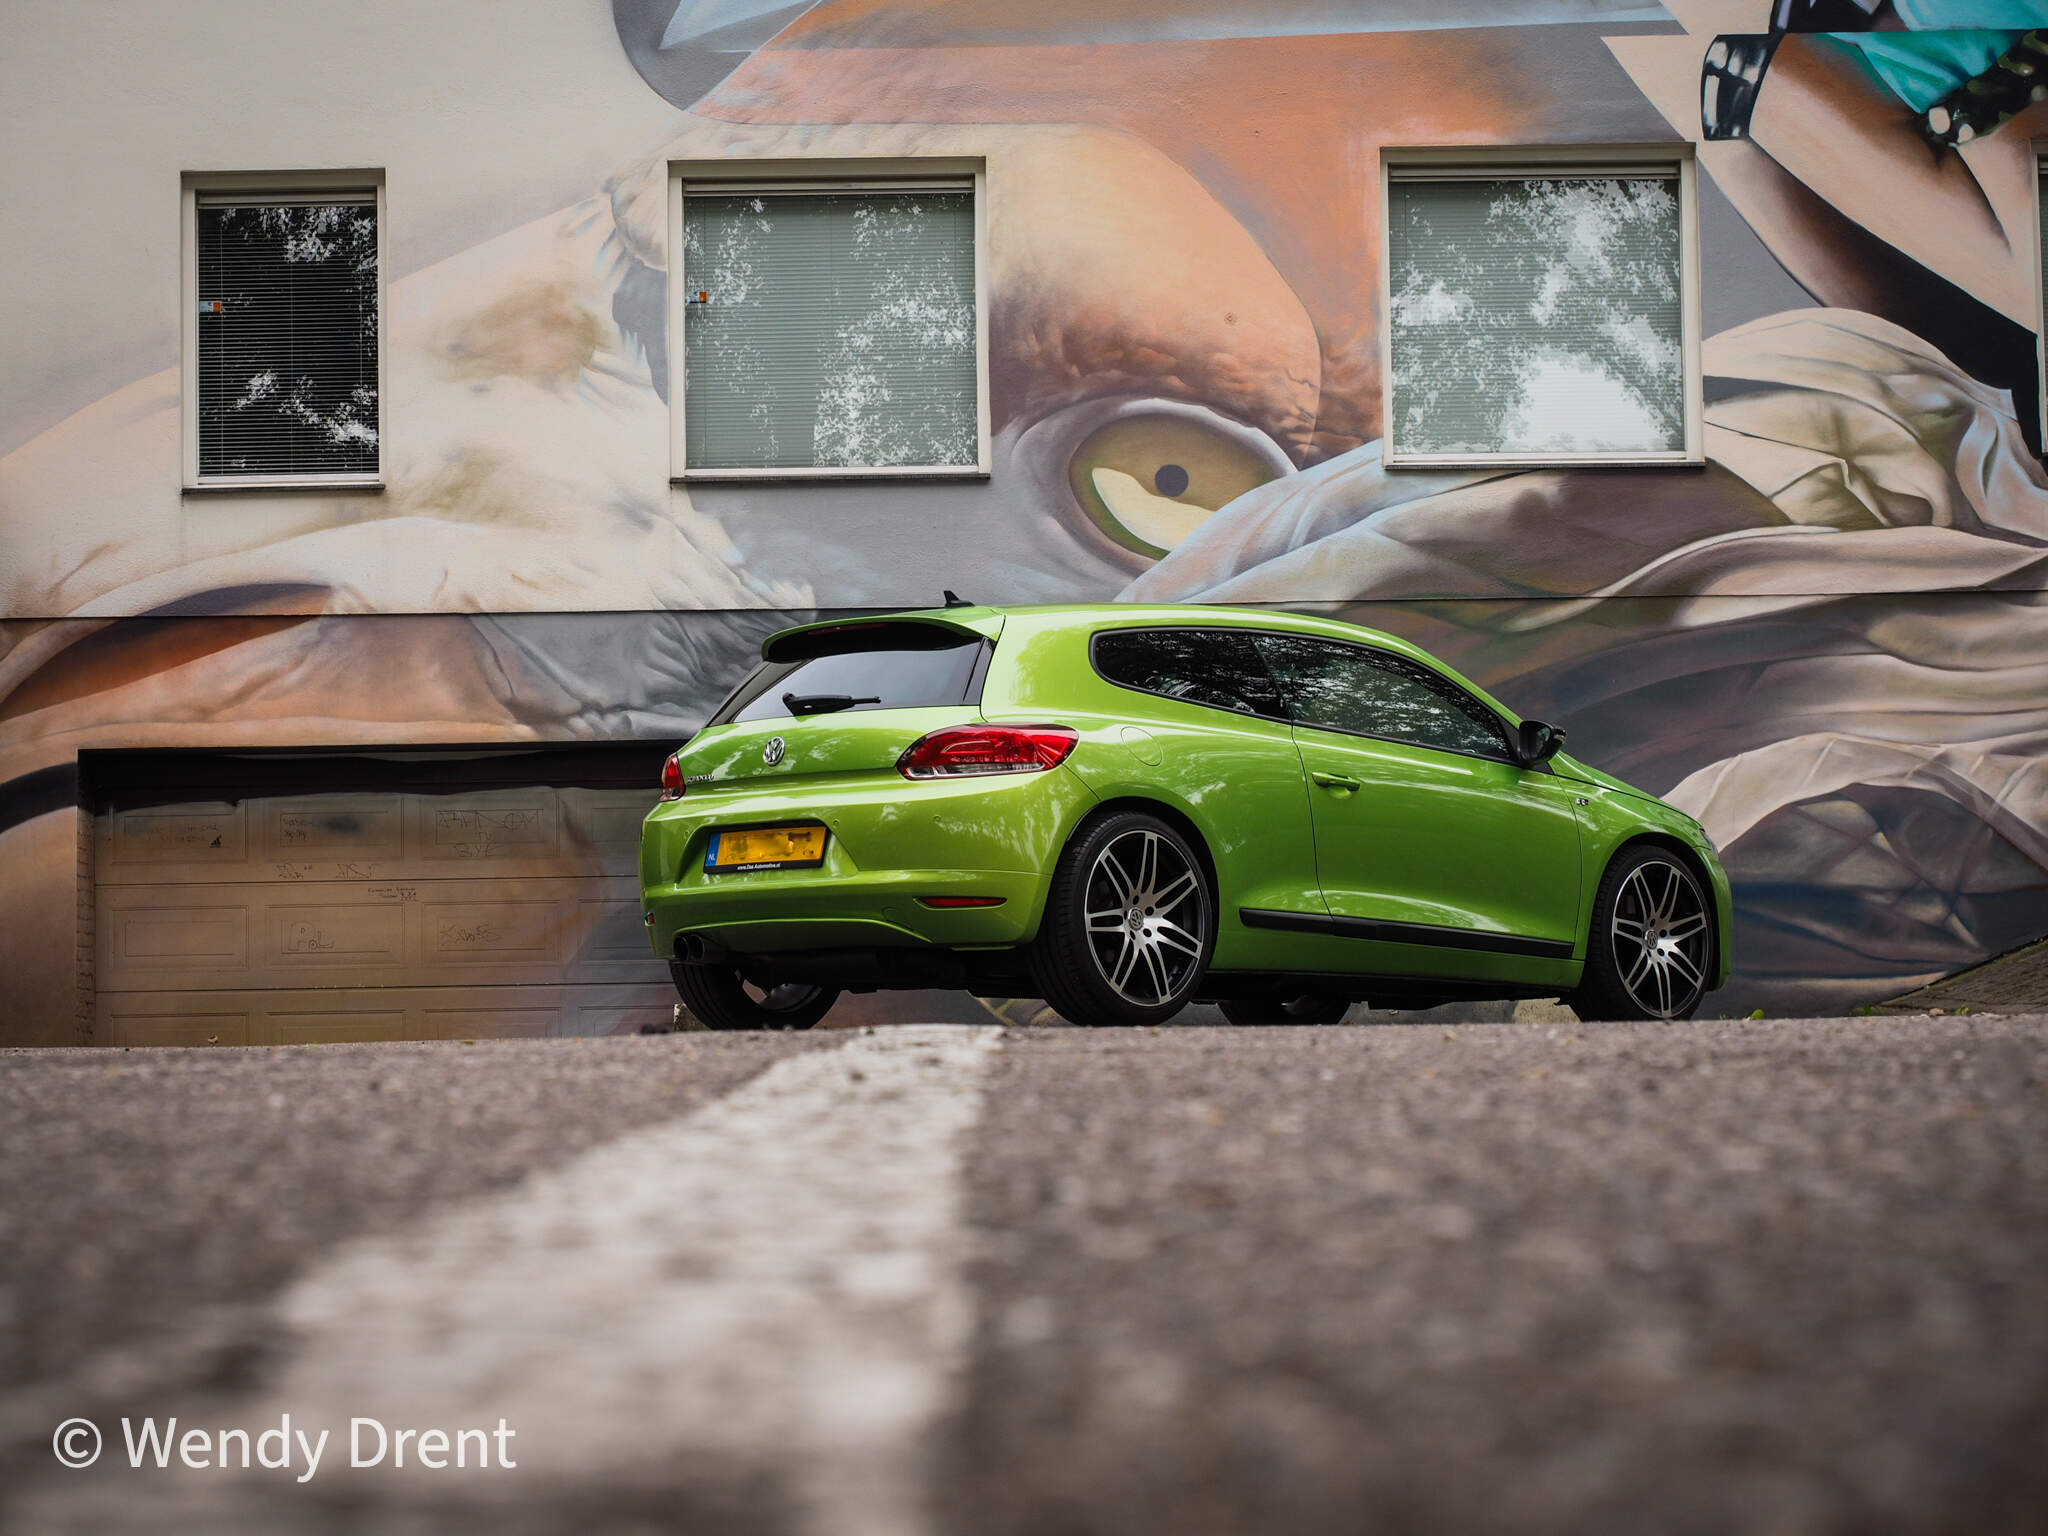 volkswagen scirocco, car, wendy drent, car photography,  fast car, green, gifgroene scirocco